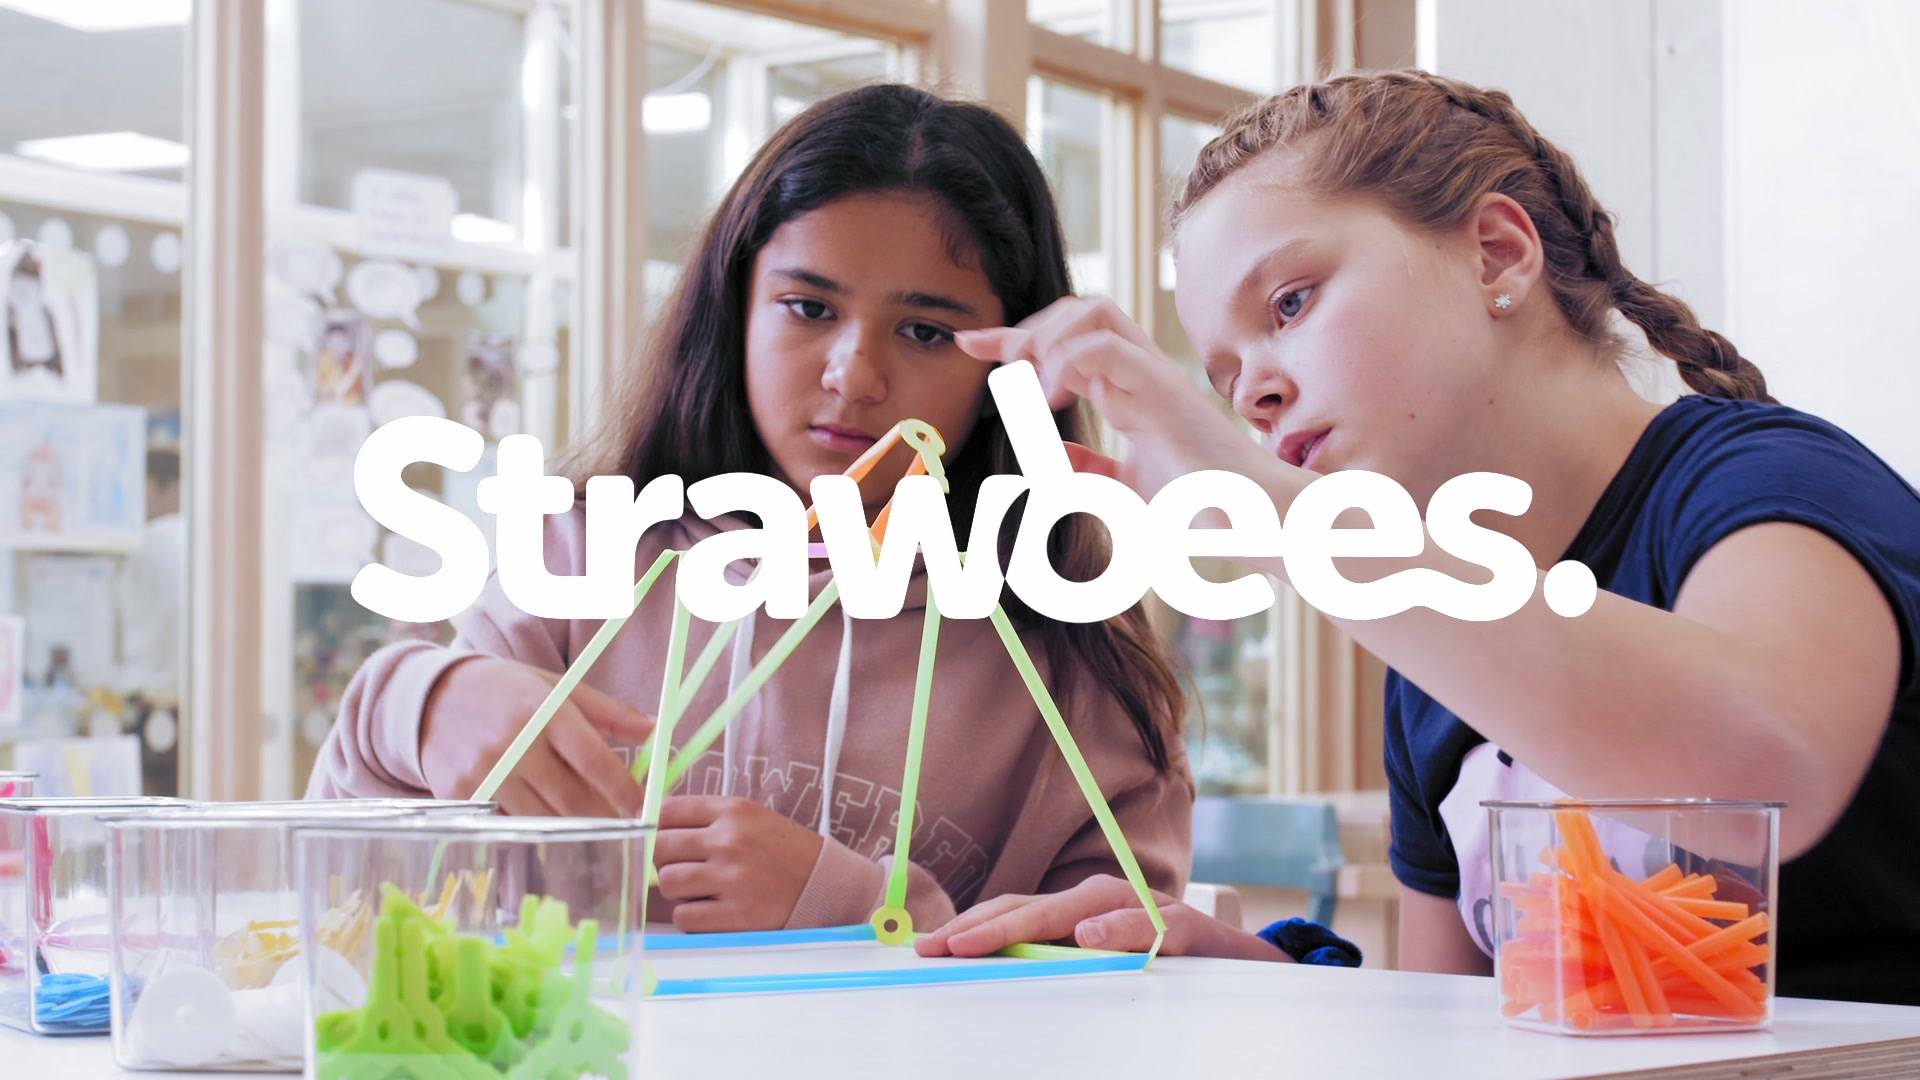 About Strawbees Homepage